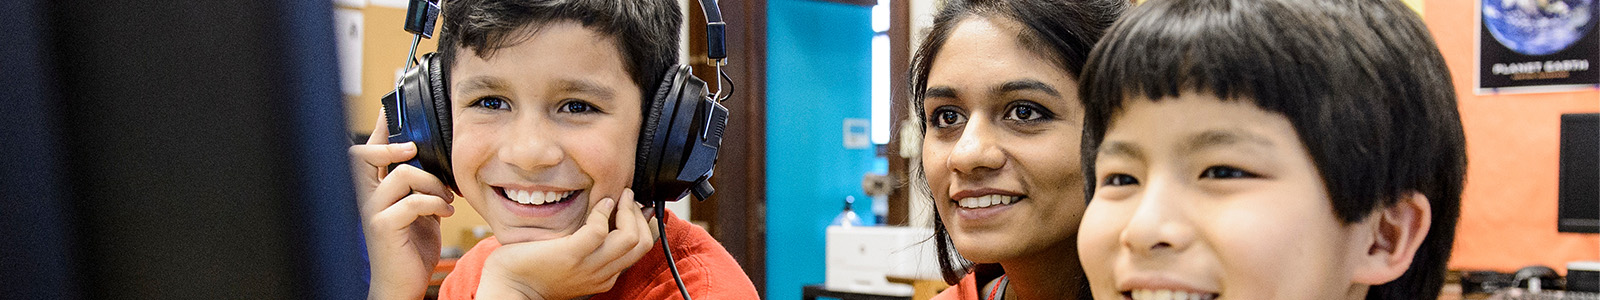 UW student Neha Godwal (left) works with students enrolled in a UW-Madison Computer Science Catapult Club at Randall Elementary School on March 7, 2017.